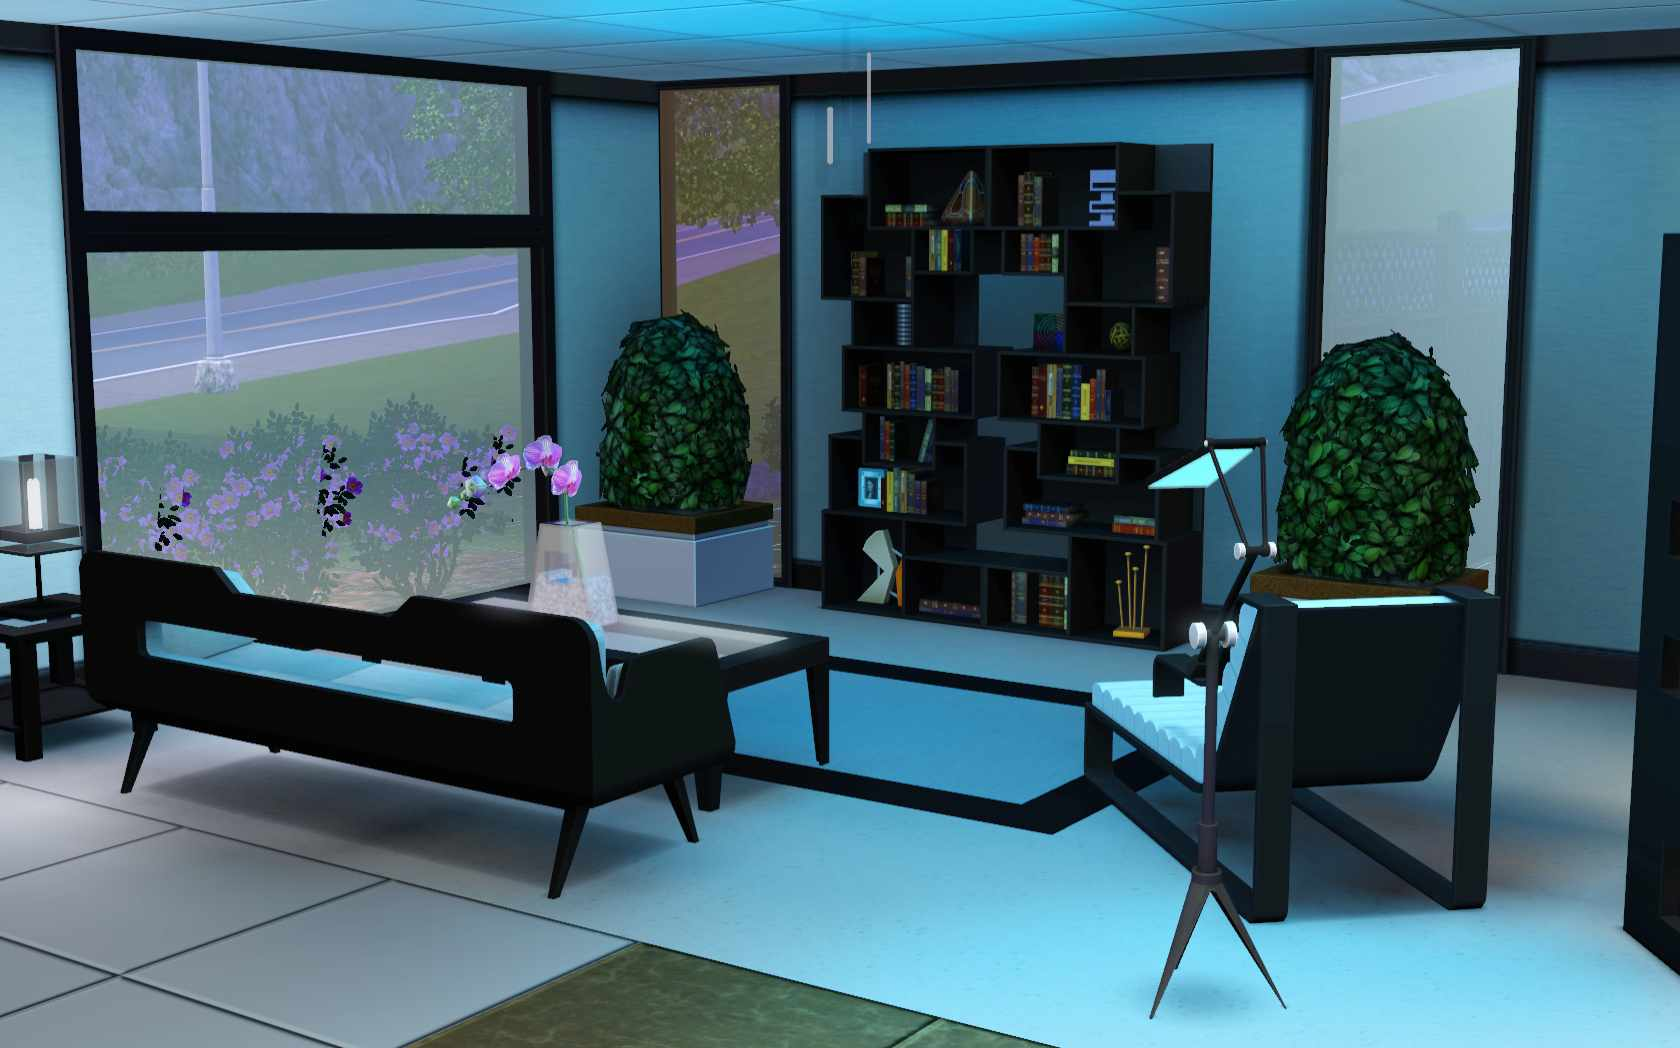 Bedroom Designs Sims 3 the sims 3: room build ideas and examples